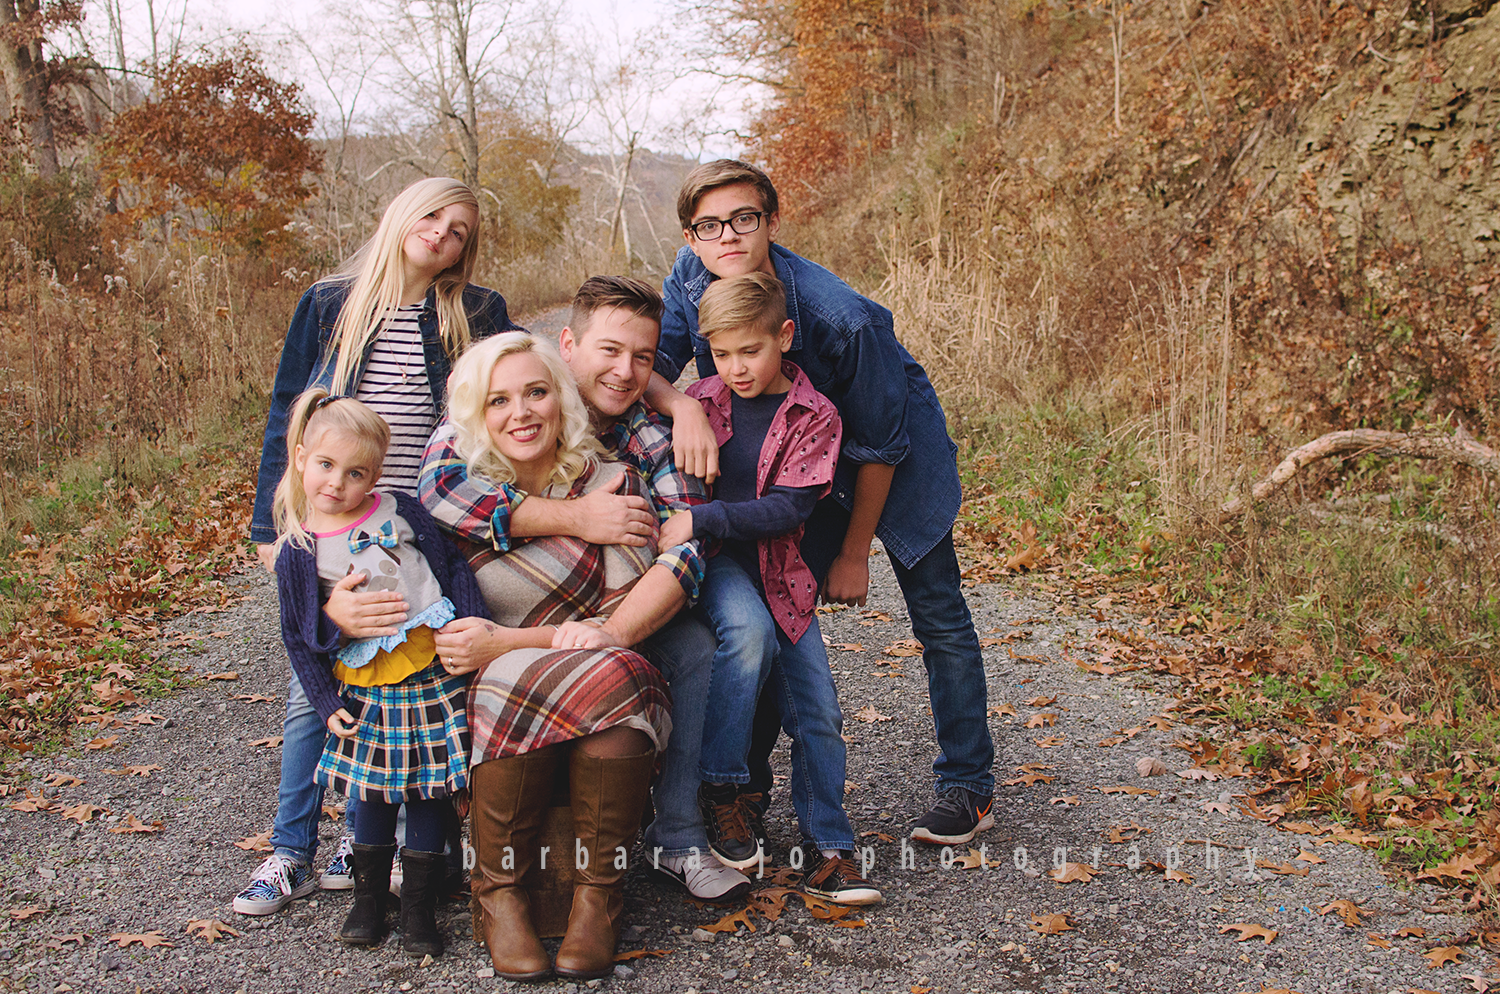 bjp-family-children-photographer-dover-oh-mini-sessions-fall-autumn-fantin4.png